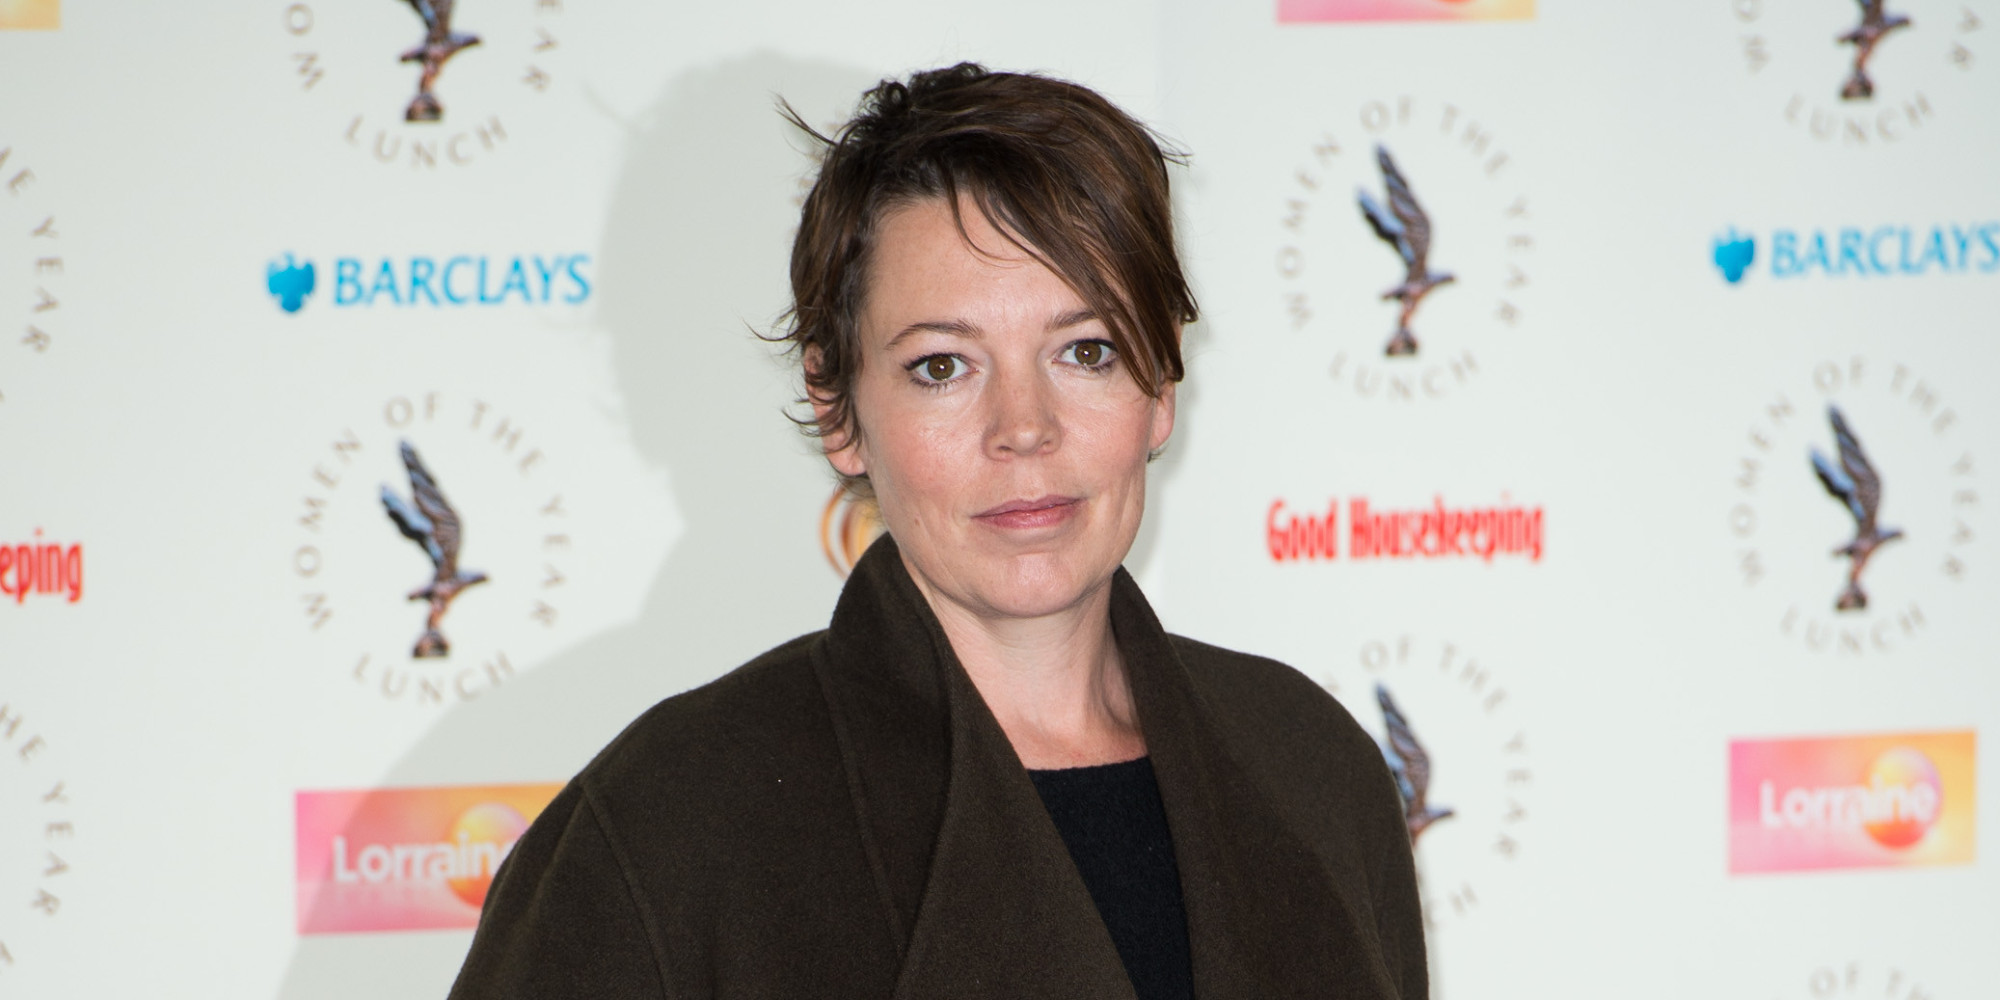 olivia colman youngolivia colman golden globes, olivia colman imdb, olivia colman theatre, olivia colman emma stone, olivia colman sons, olivia colman dr who, olivia colman green wing, olivia colman doctor who, olivia colman young, olivia colman 2016, olivia colman wikipedia, olivia colman tumblr, olivia colman twitter